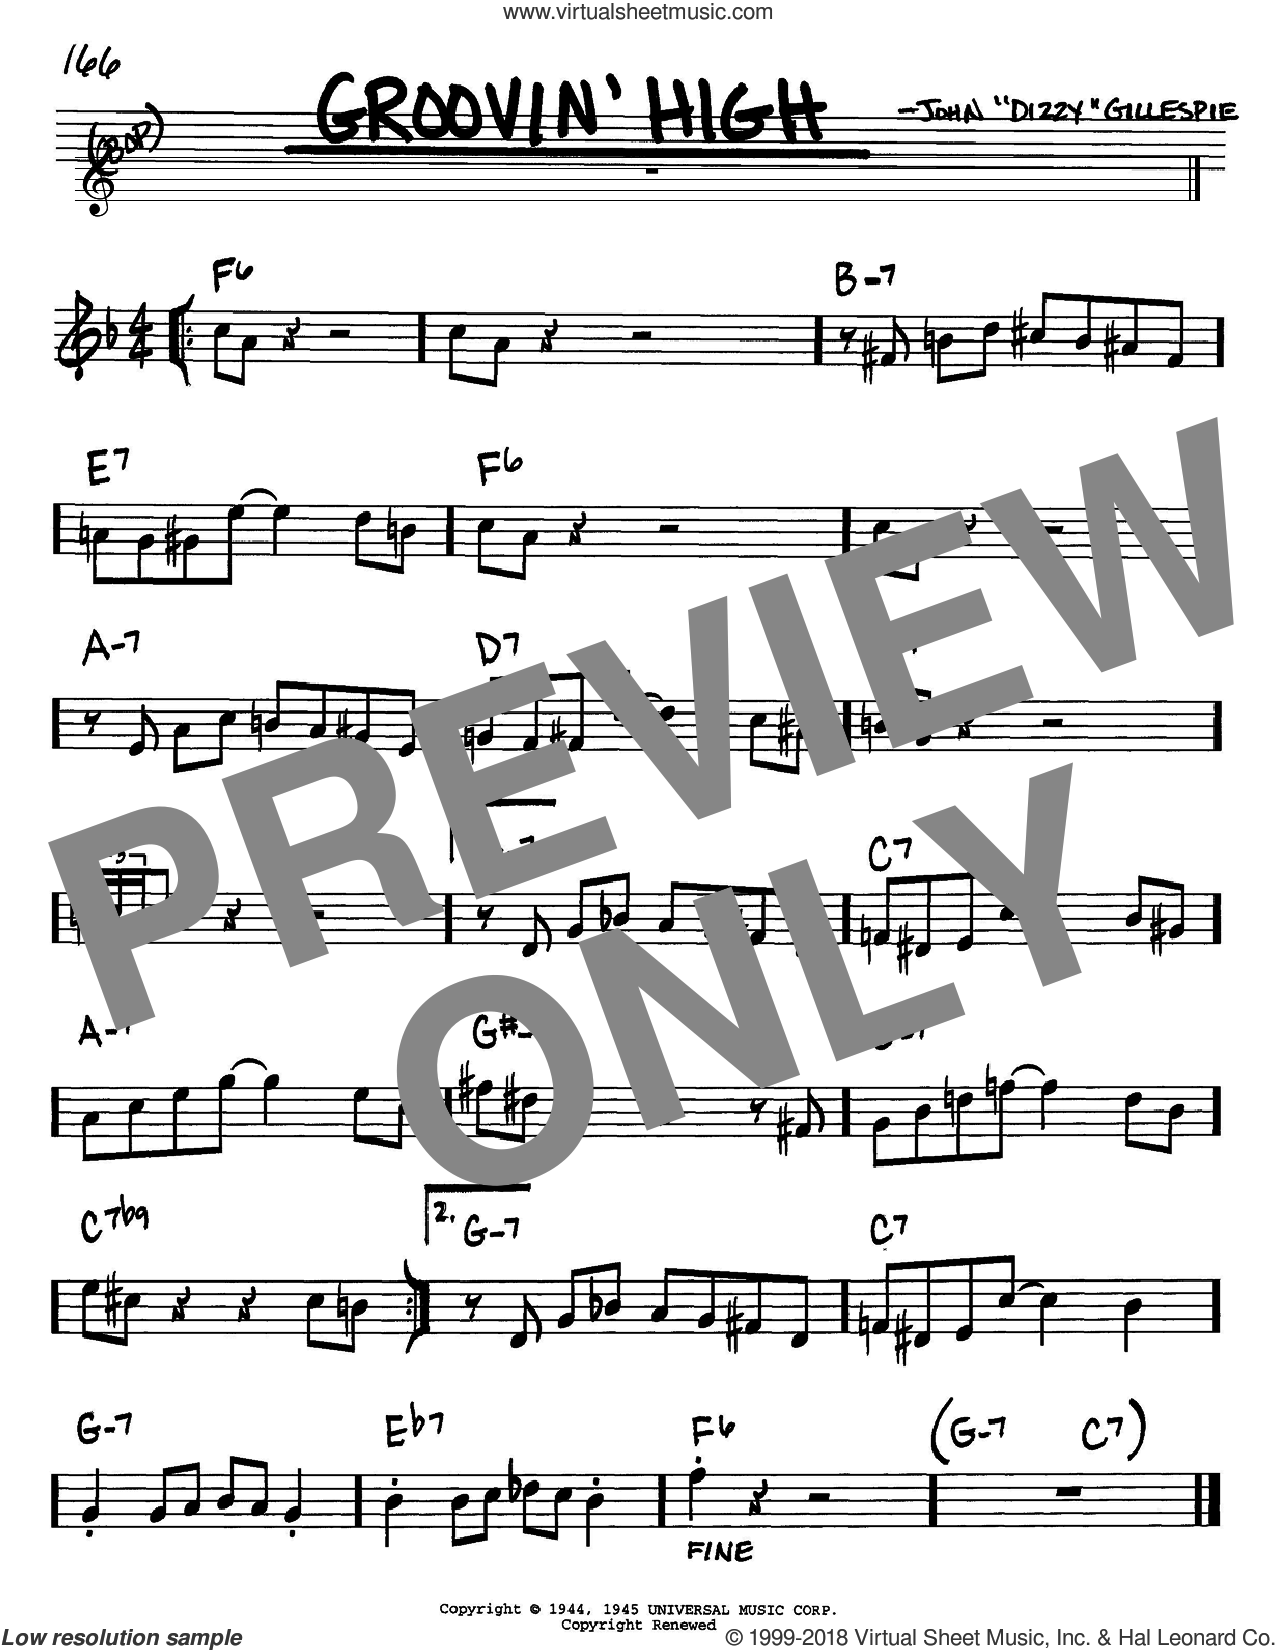 Groovin' High sheet music for voice and other instruments (in Bb) by Dizzy Gillespie and Charlie Parker, intermediate skill level